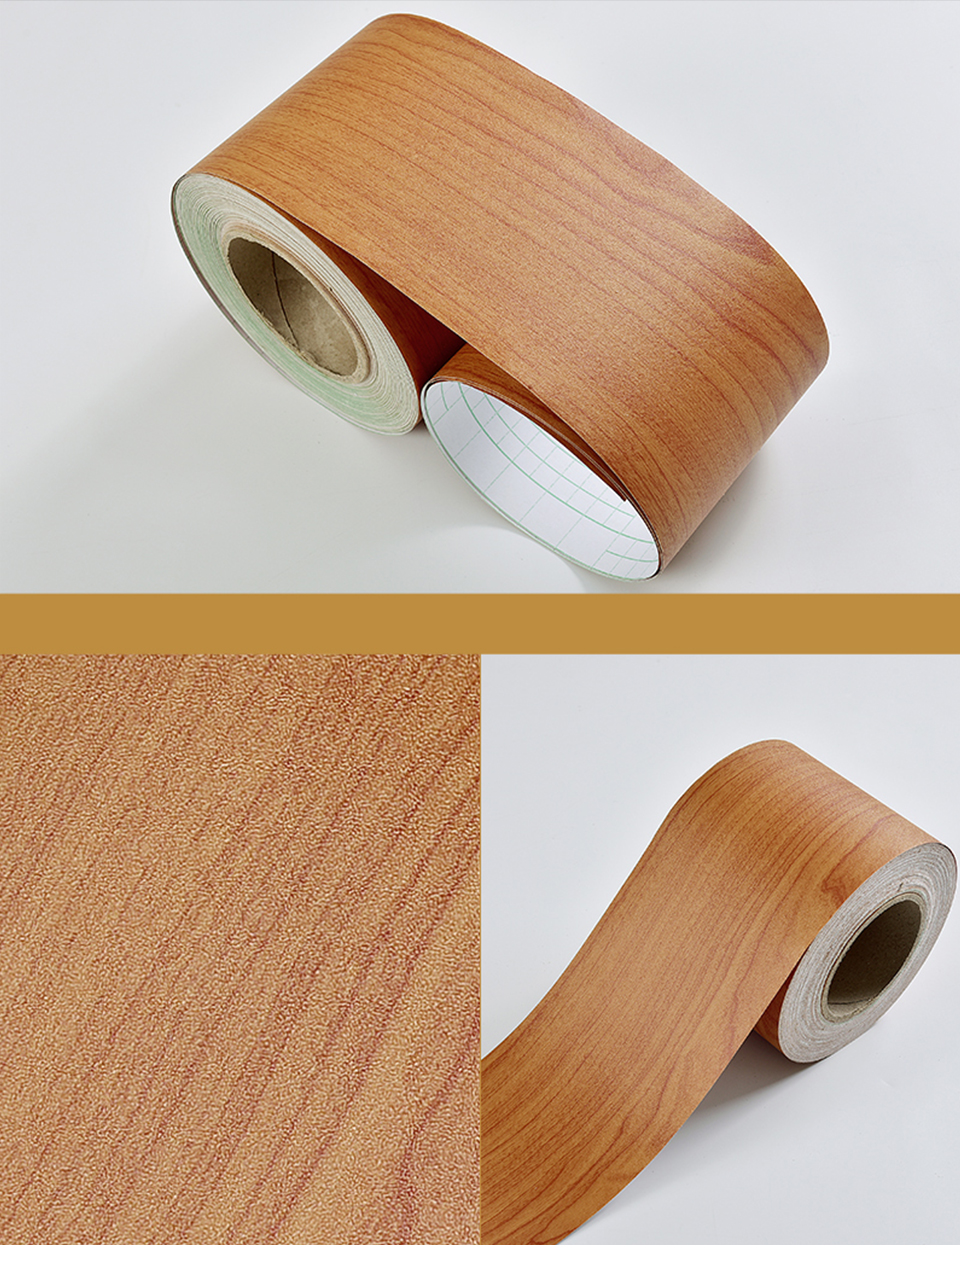 Wood Self Adhesive Window Decal Living Room Floor Border Skirting Contact Paper Waterproof Waist Line Wallpaper Home Improvement He2e8a5cfb1f84329a1b1cd76ed6fa681m